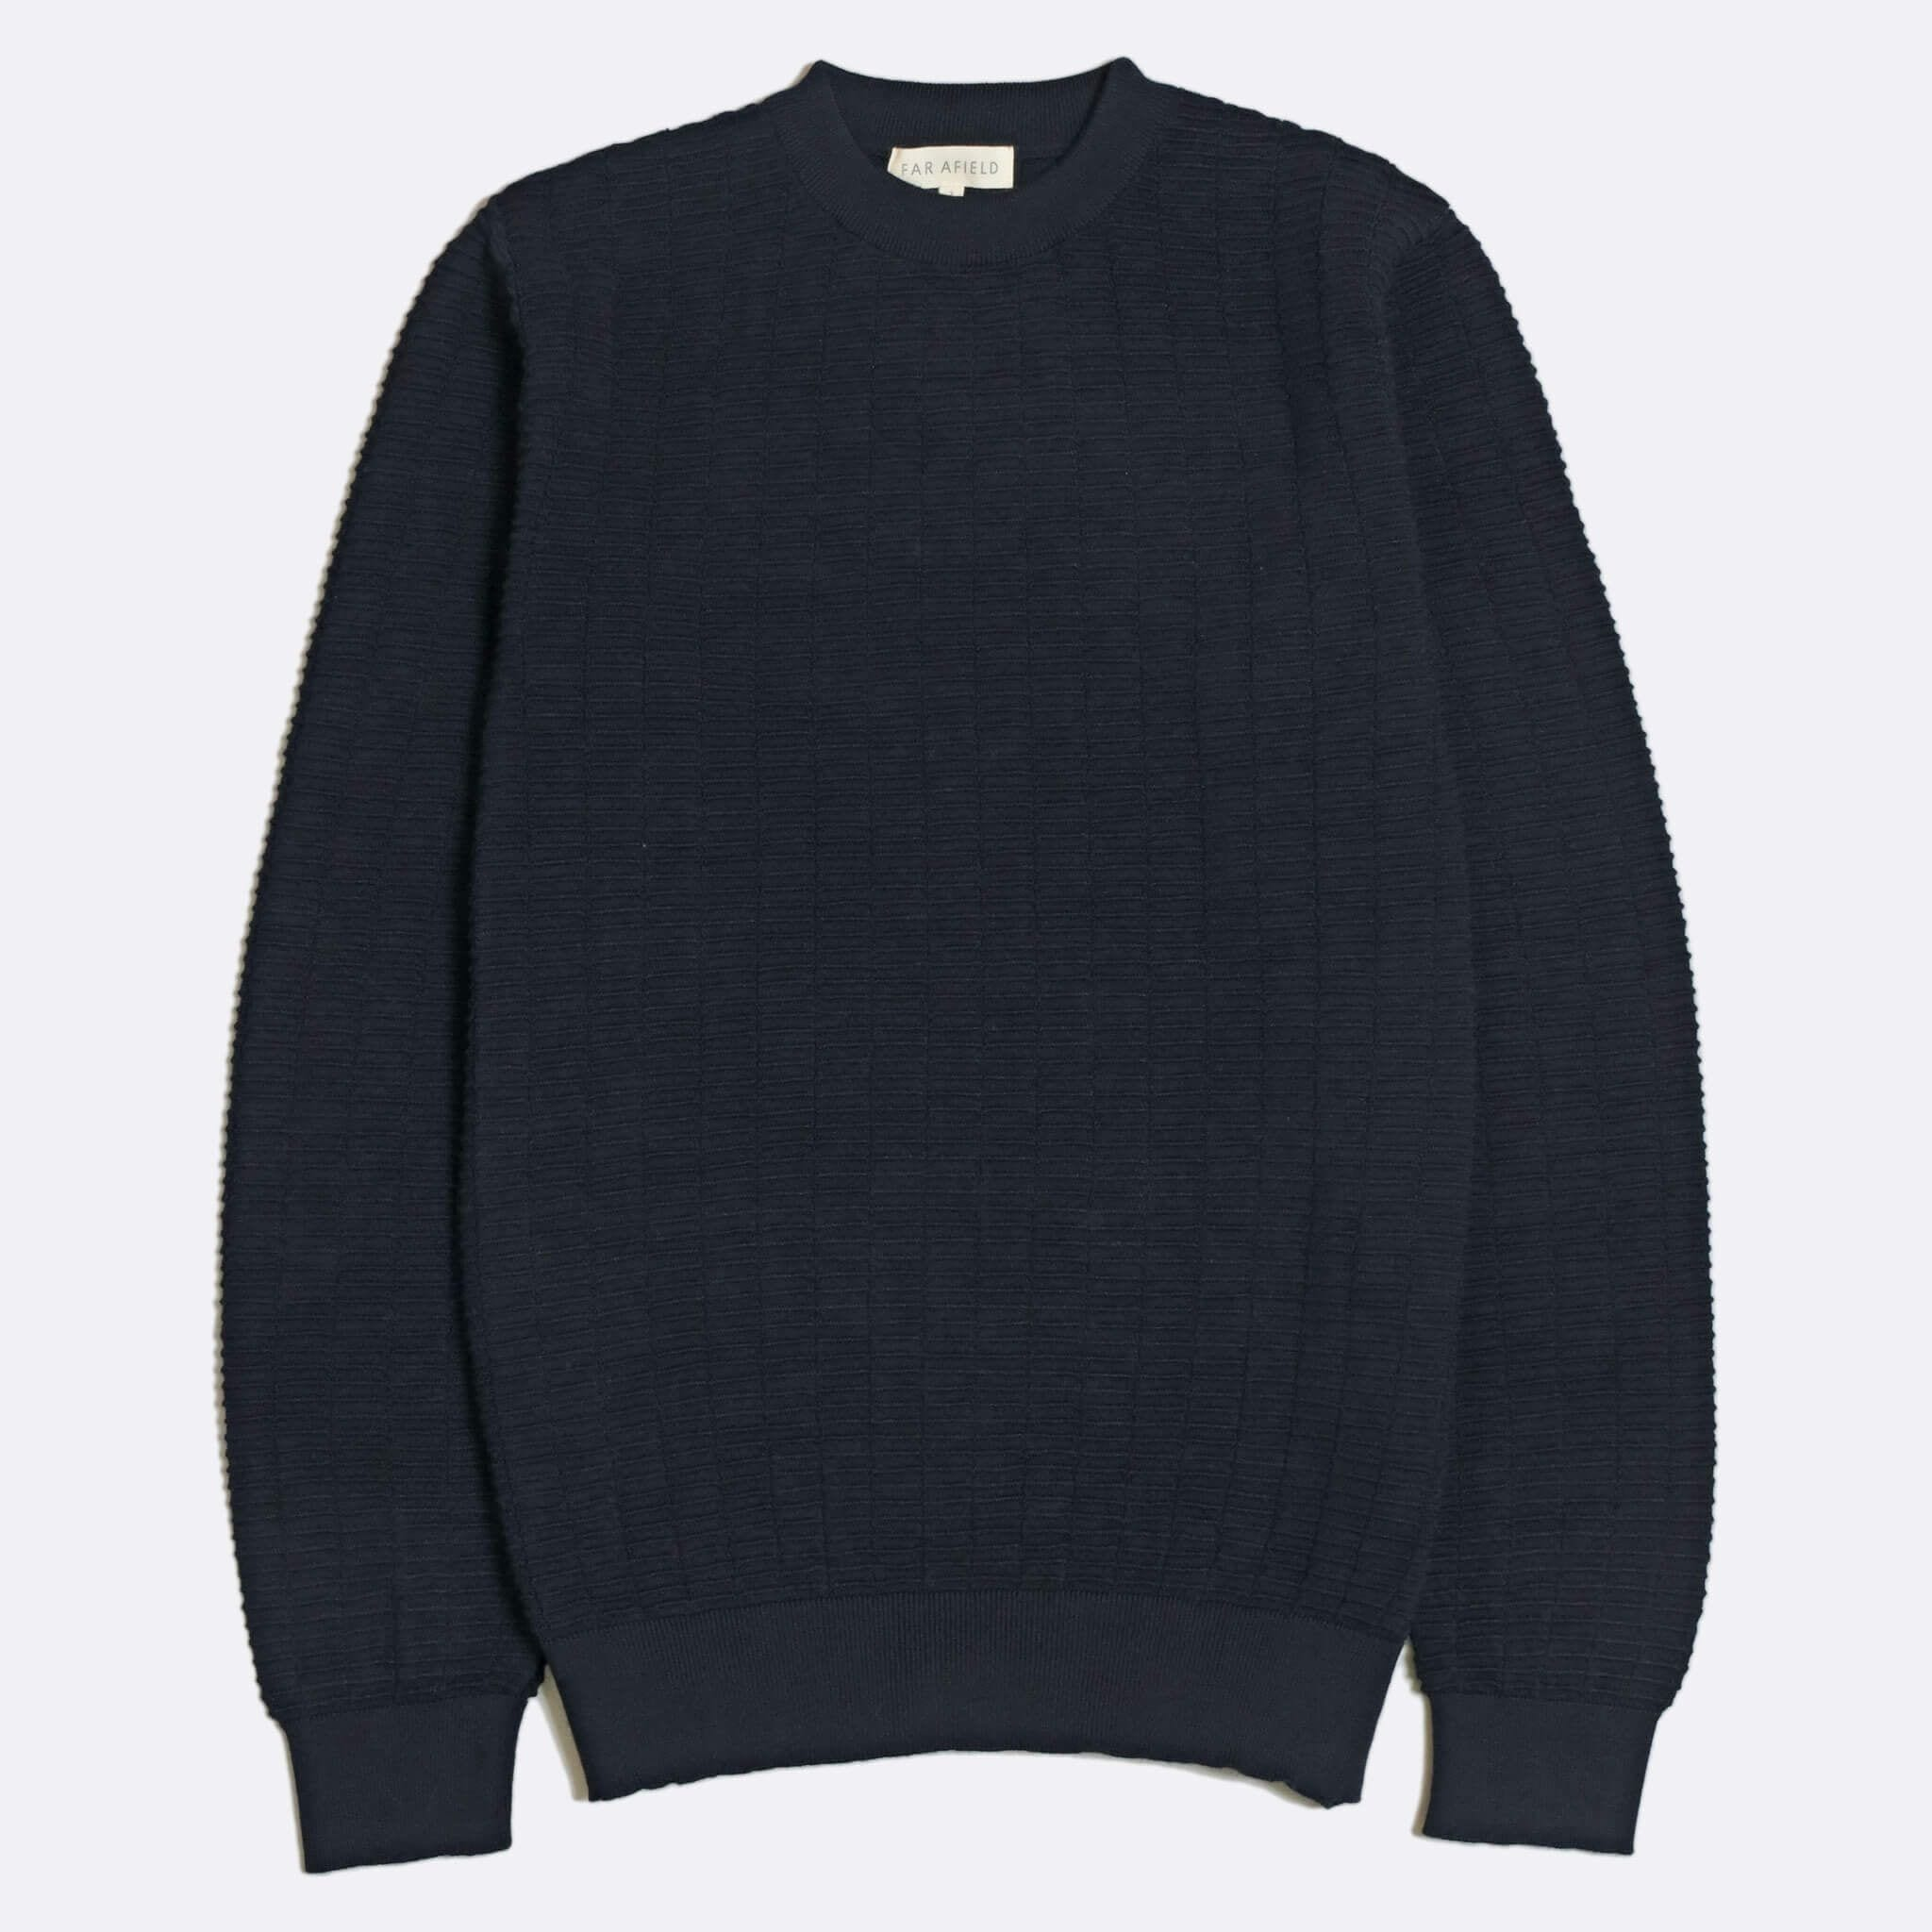 Far Afield Vitor Ribbed Crewneck a Navy Fine Merino Blend Fabric Classic Jumper Casual